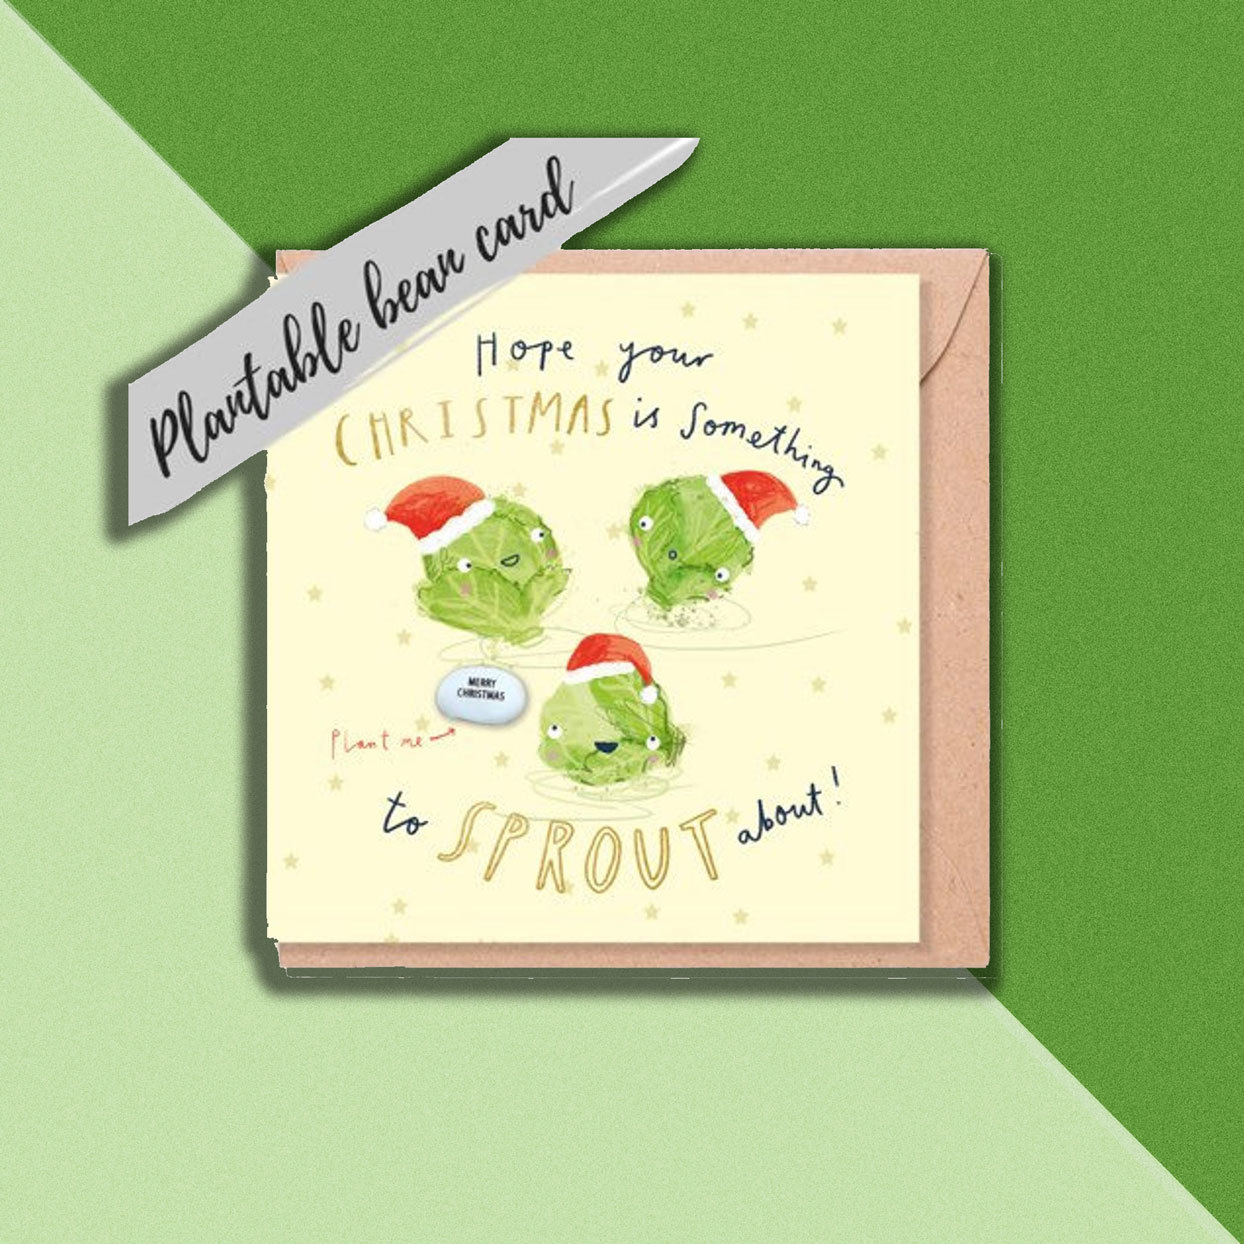 Plantable Brussels Sprouts Holiday Card on Green Background